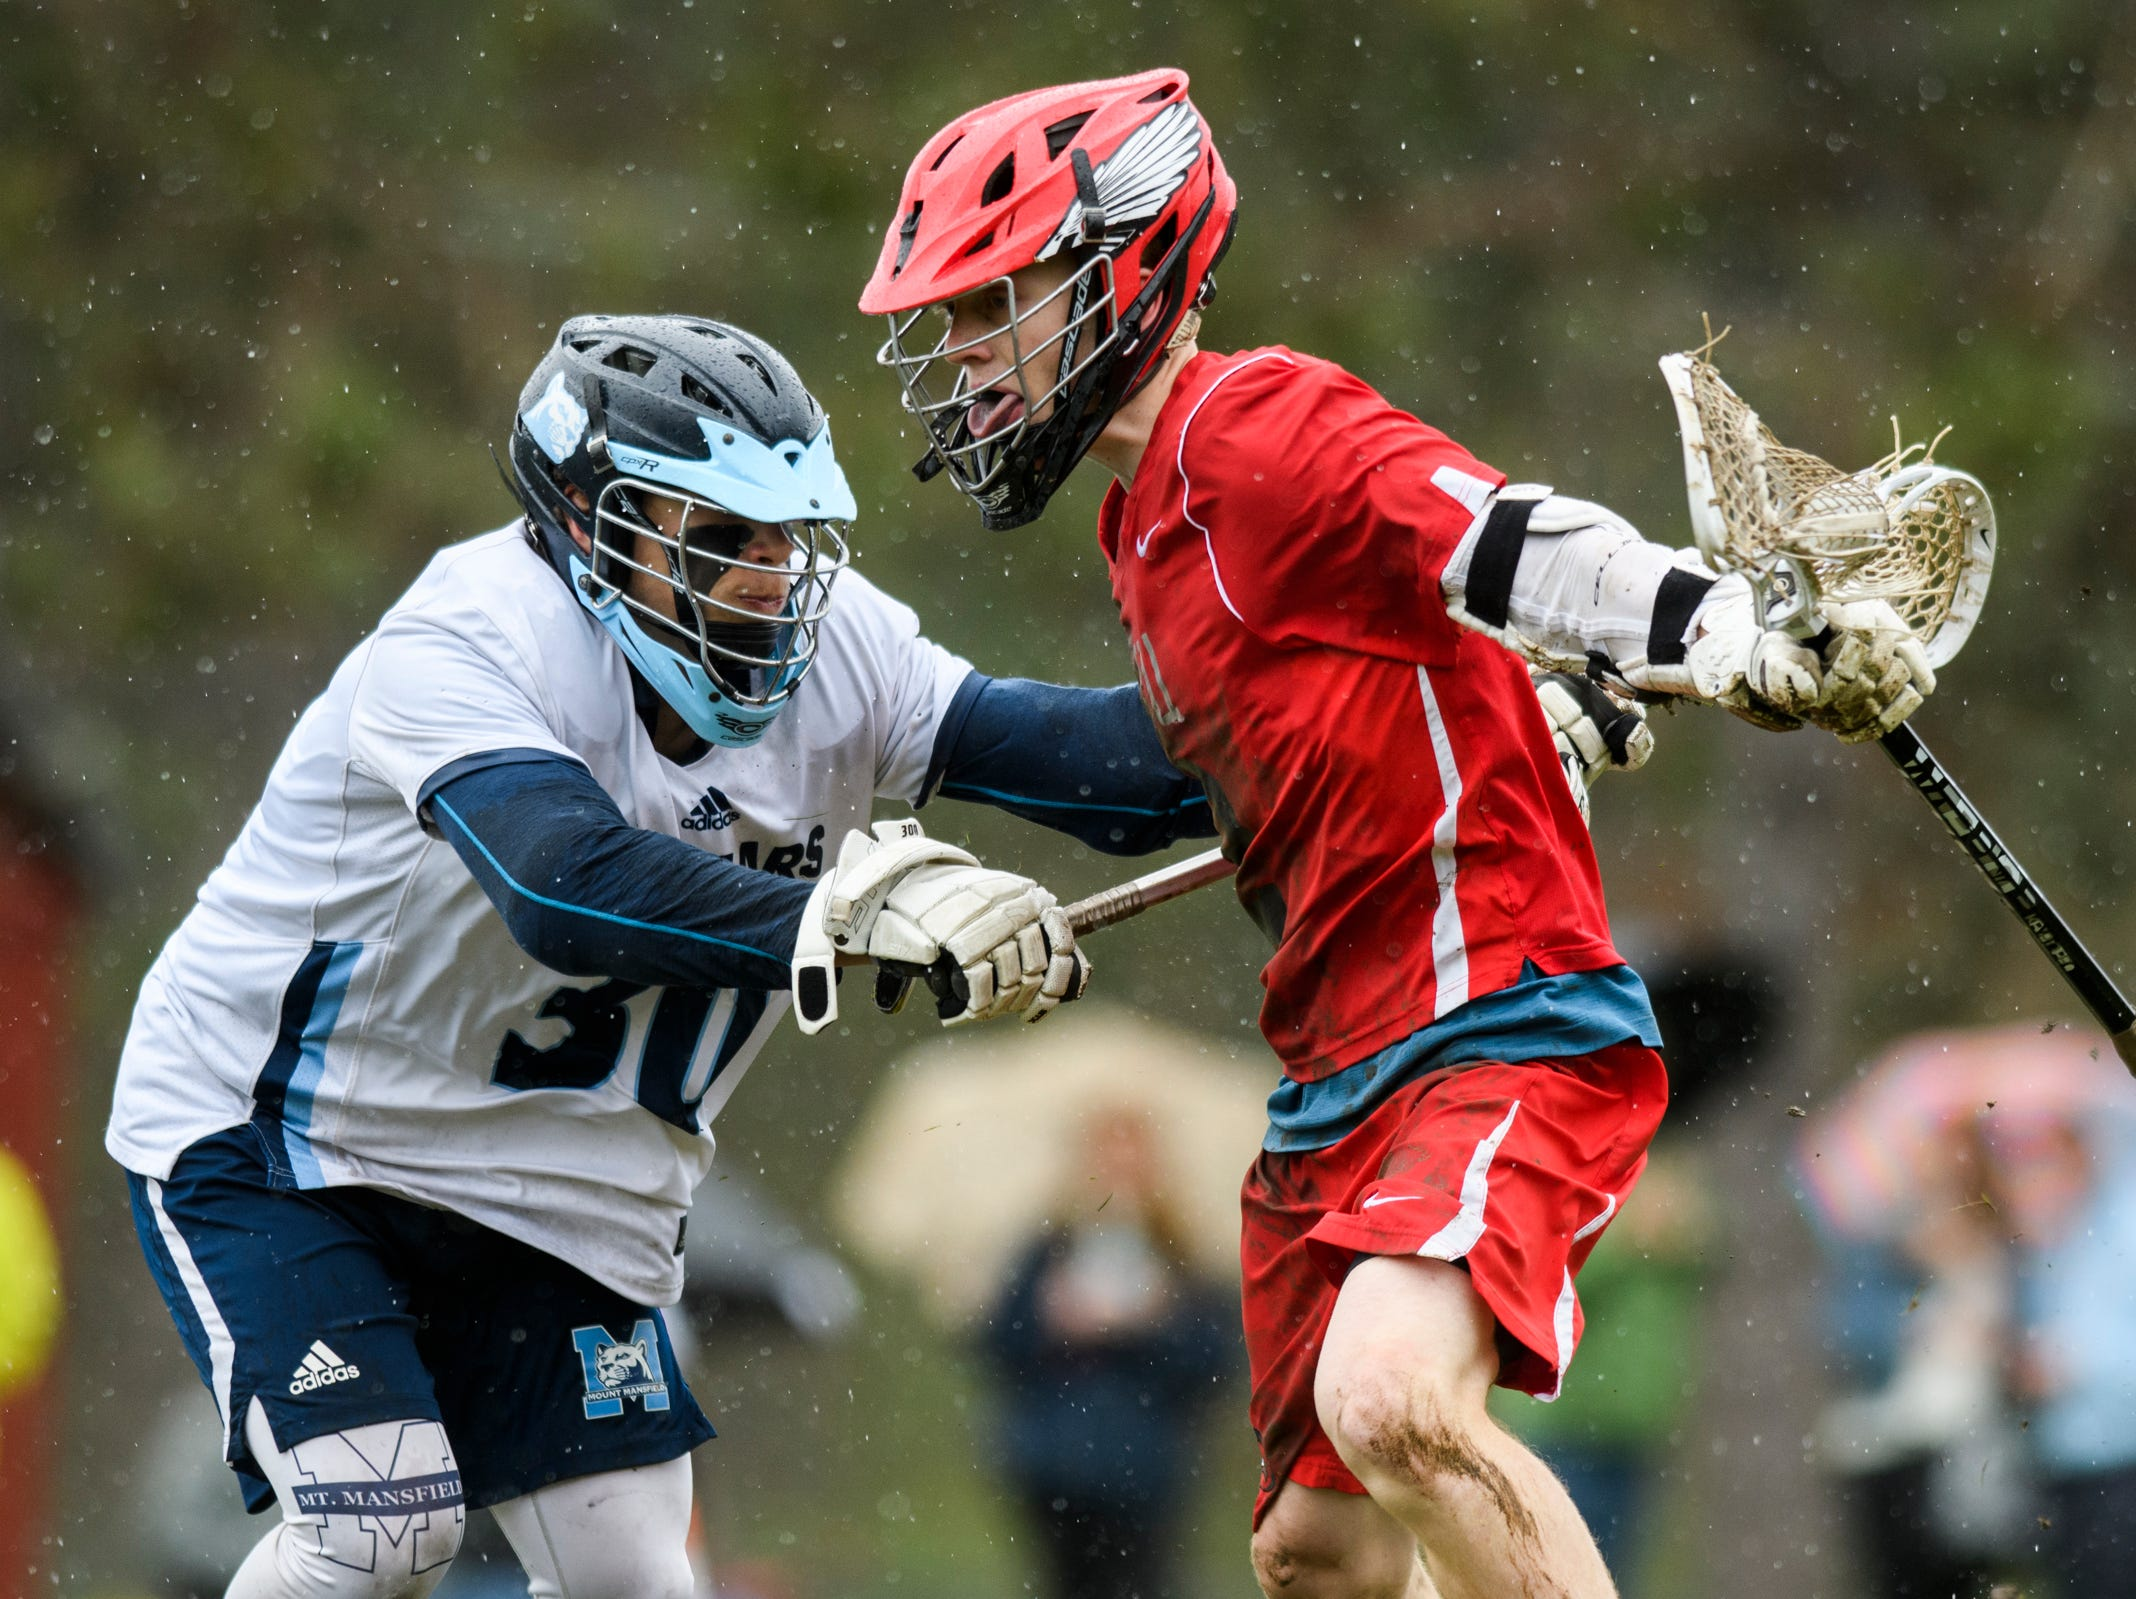 MMU's David Seymour (30) checks CVU's Sean Gilliam (2) during the boys lacrosse game between the Champlain Valley Union Redhawks and the Mount Mansfield Cougars at MMU High School on Tuesday afternoon May 14, 2019 in Jericho, Vermont.